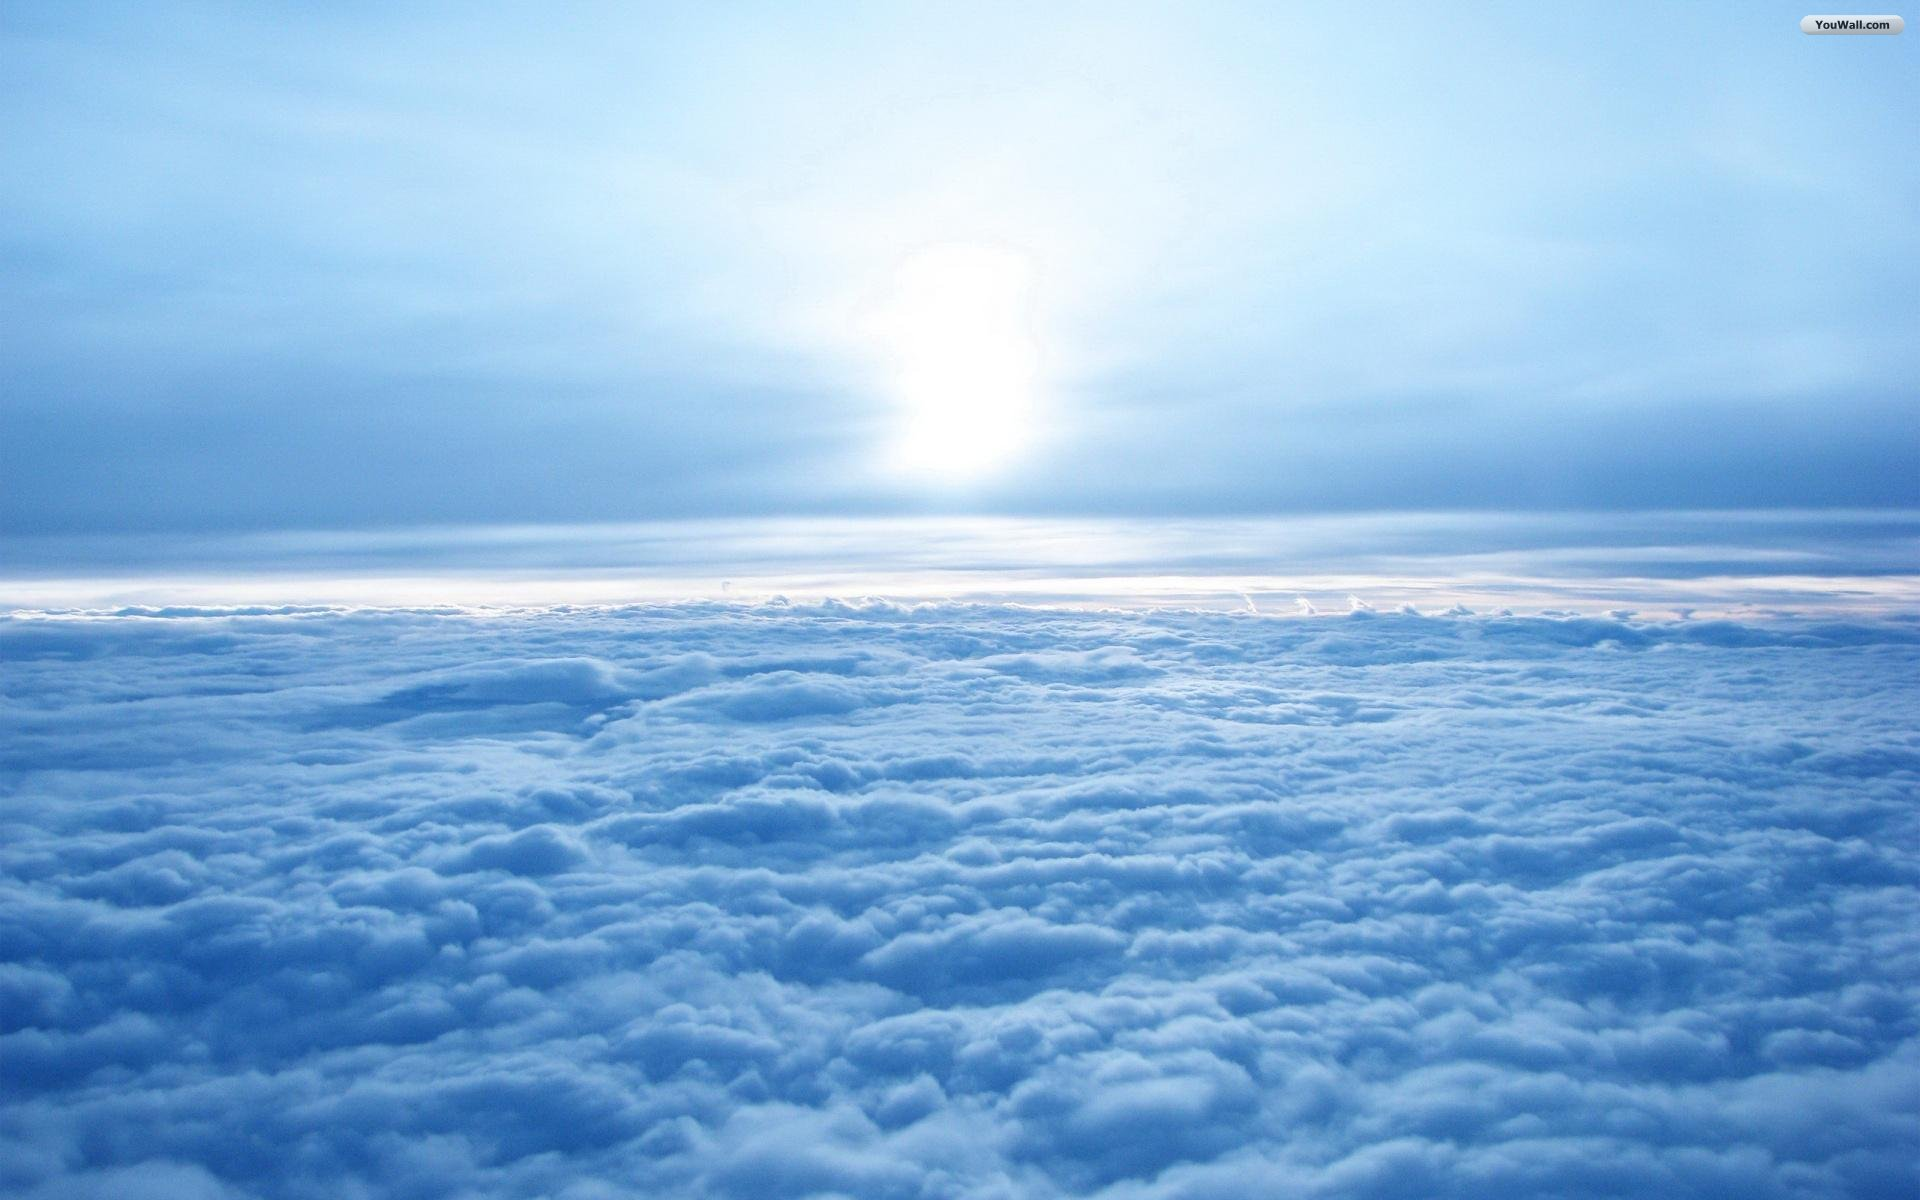 Above The Blue Clouds Wallpaper   wallpaperwallpapersfree wallpaper 1920x1200